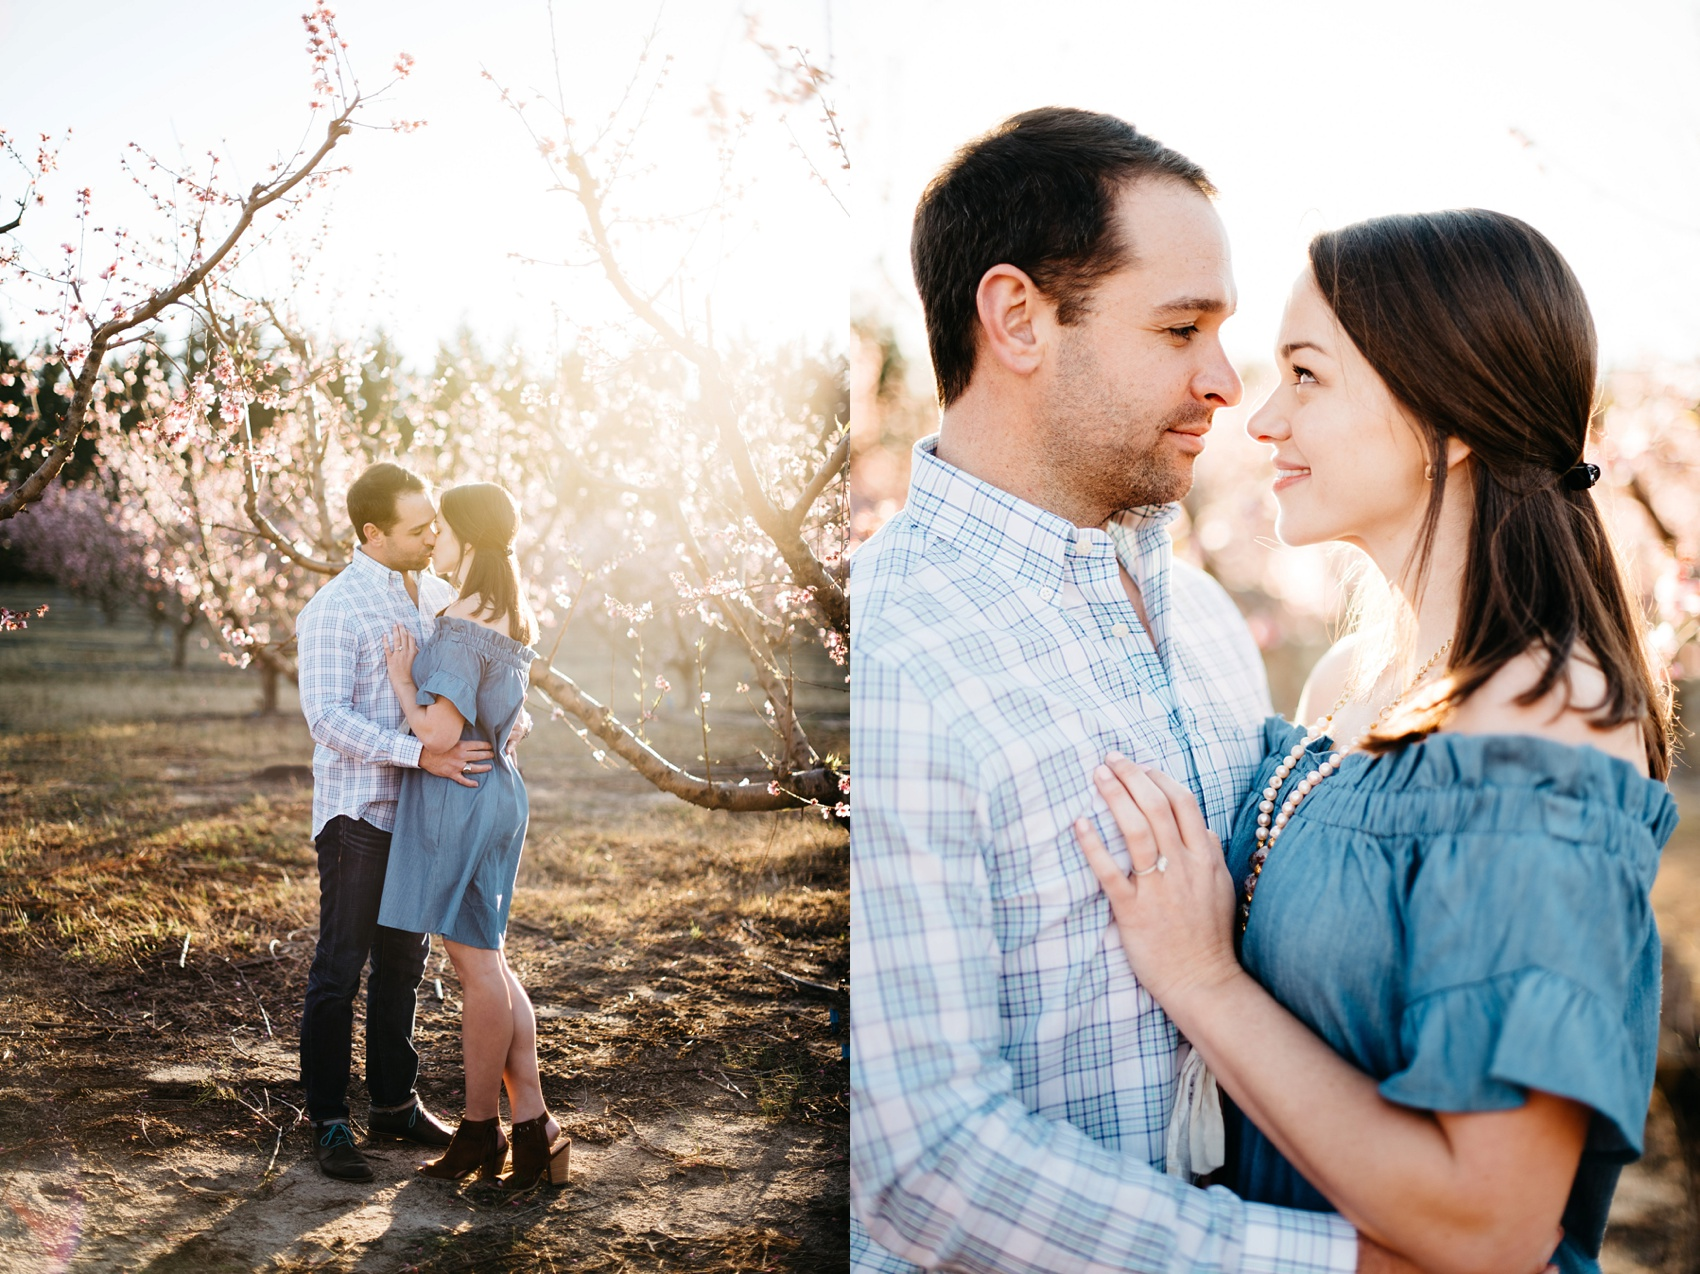 peachtree_engagement_session_1847.jpg